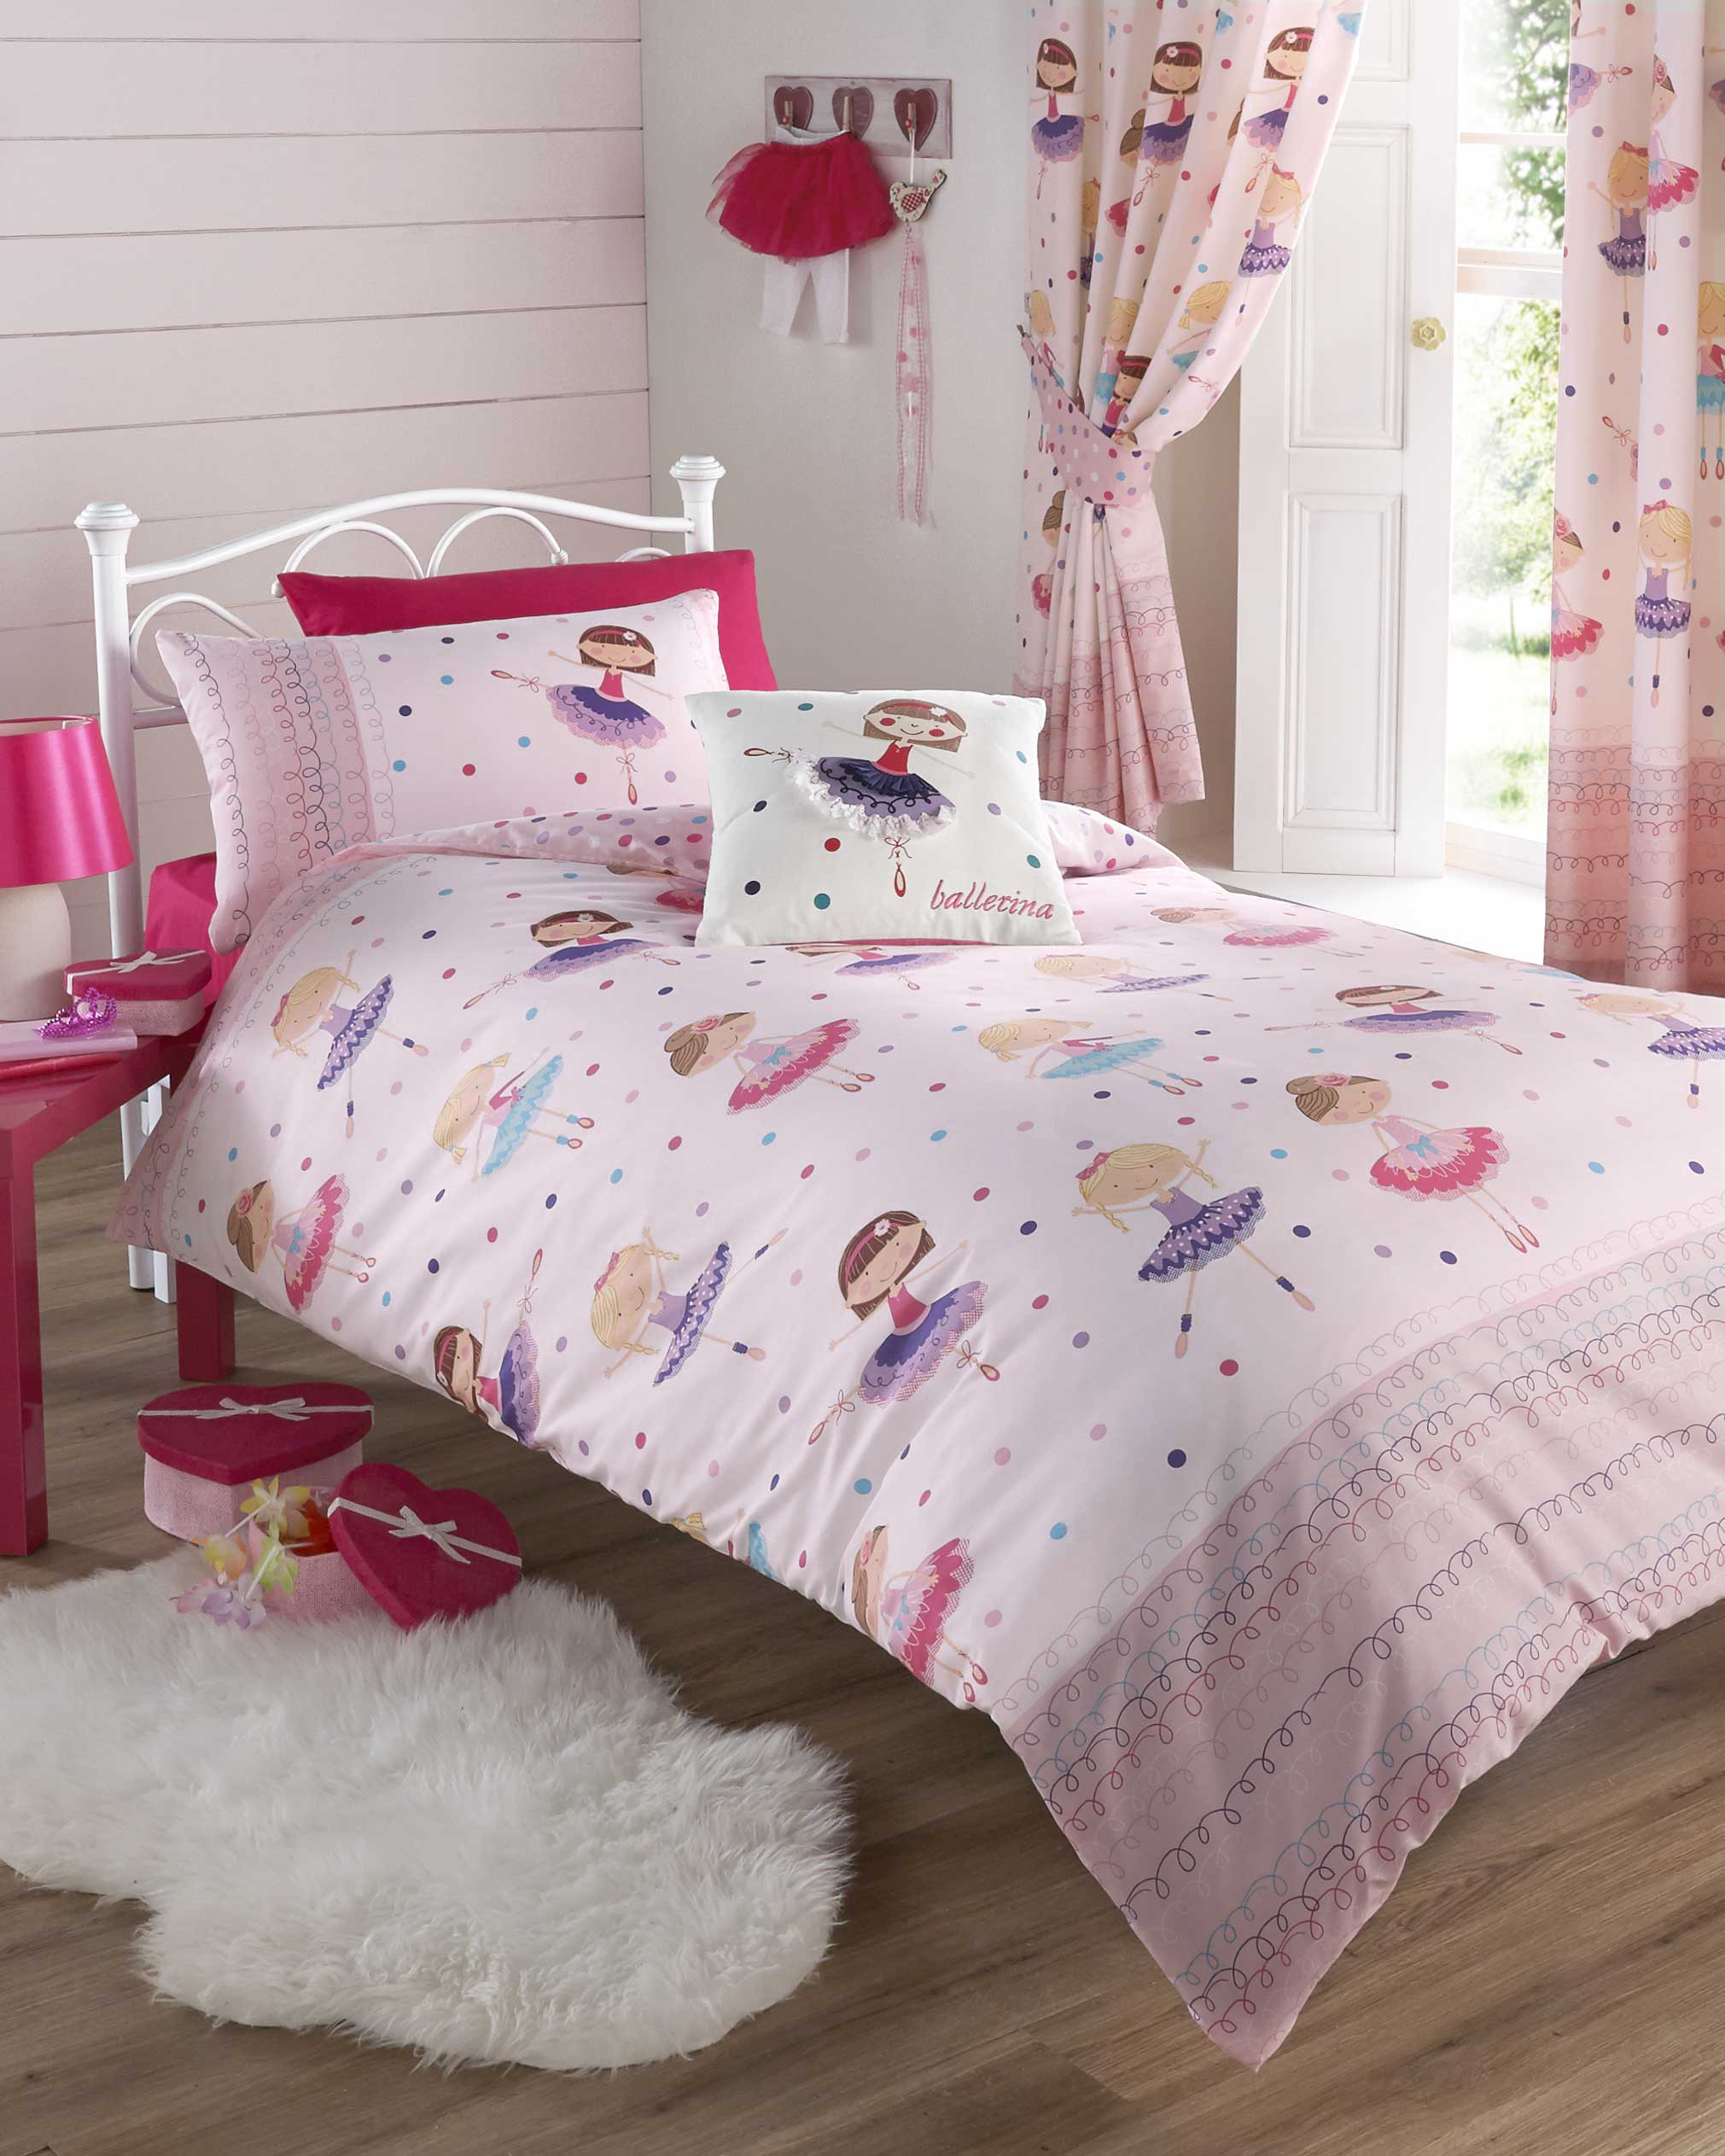 Find great deals on eBay for bed covers for girls. Shop with confidence.